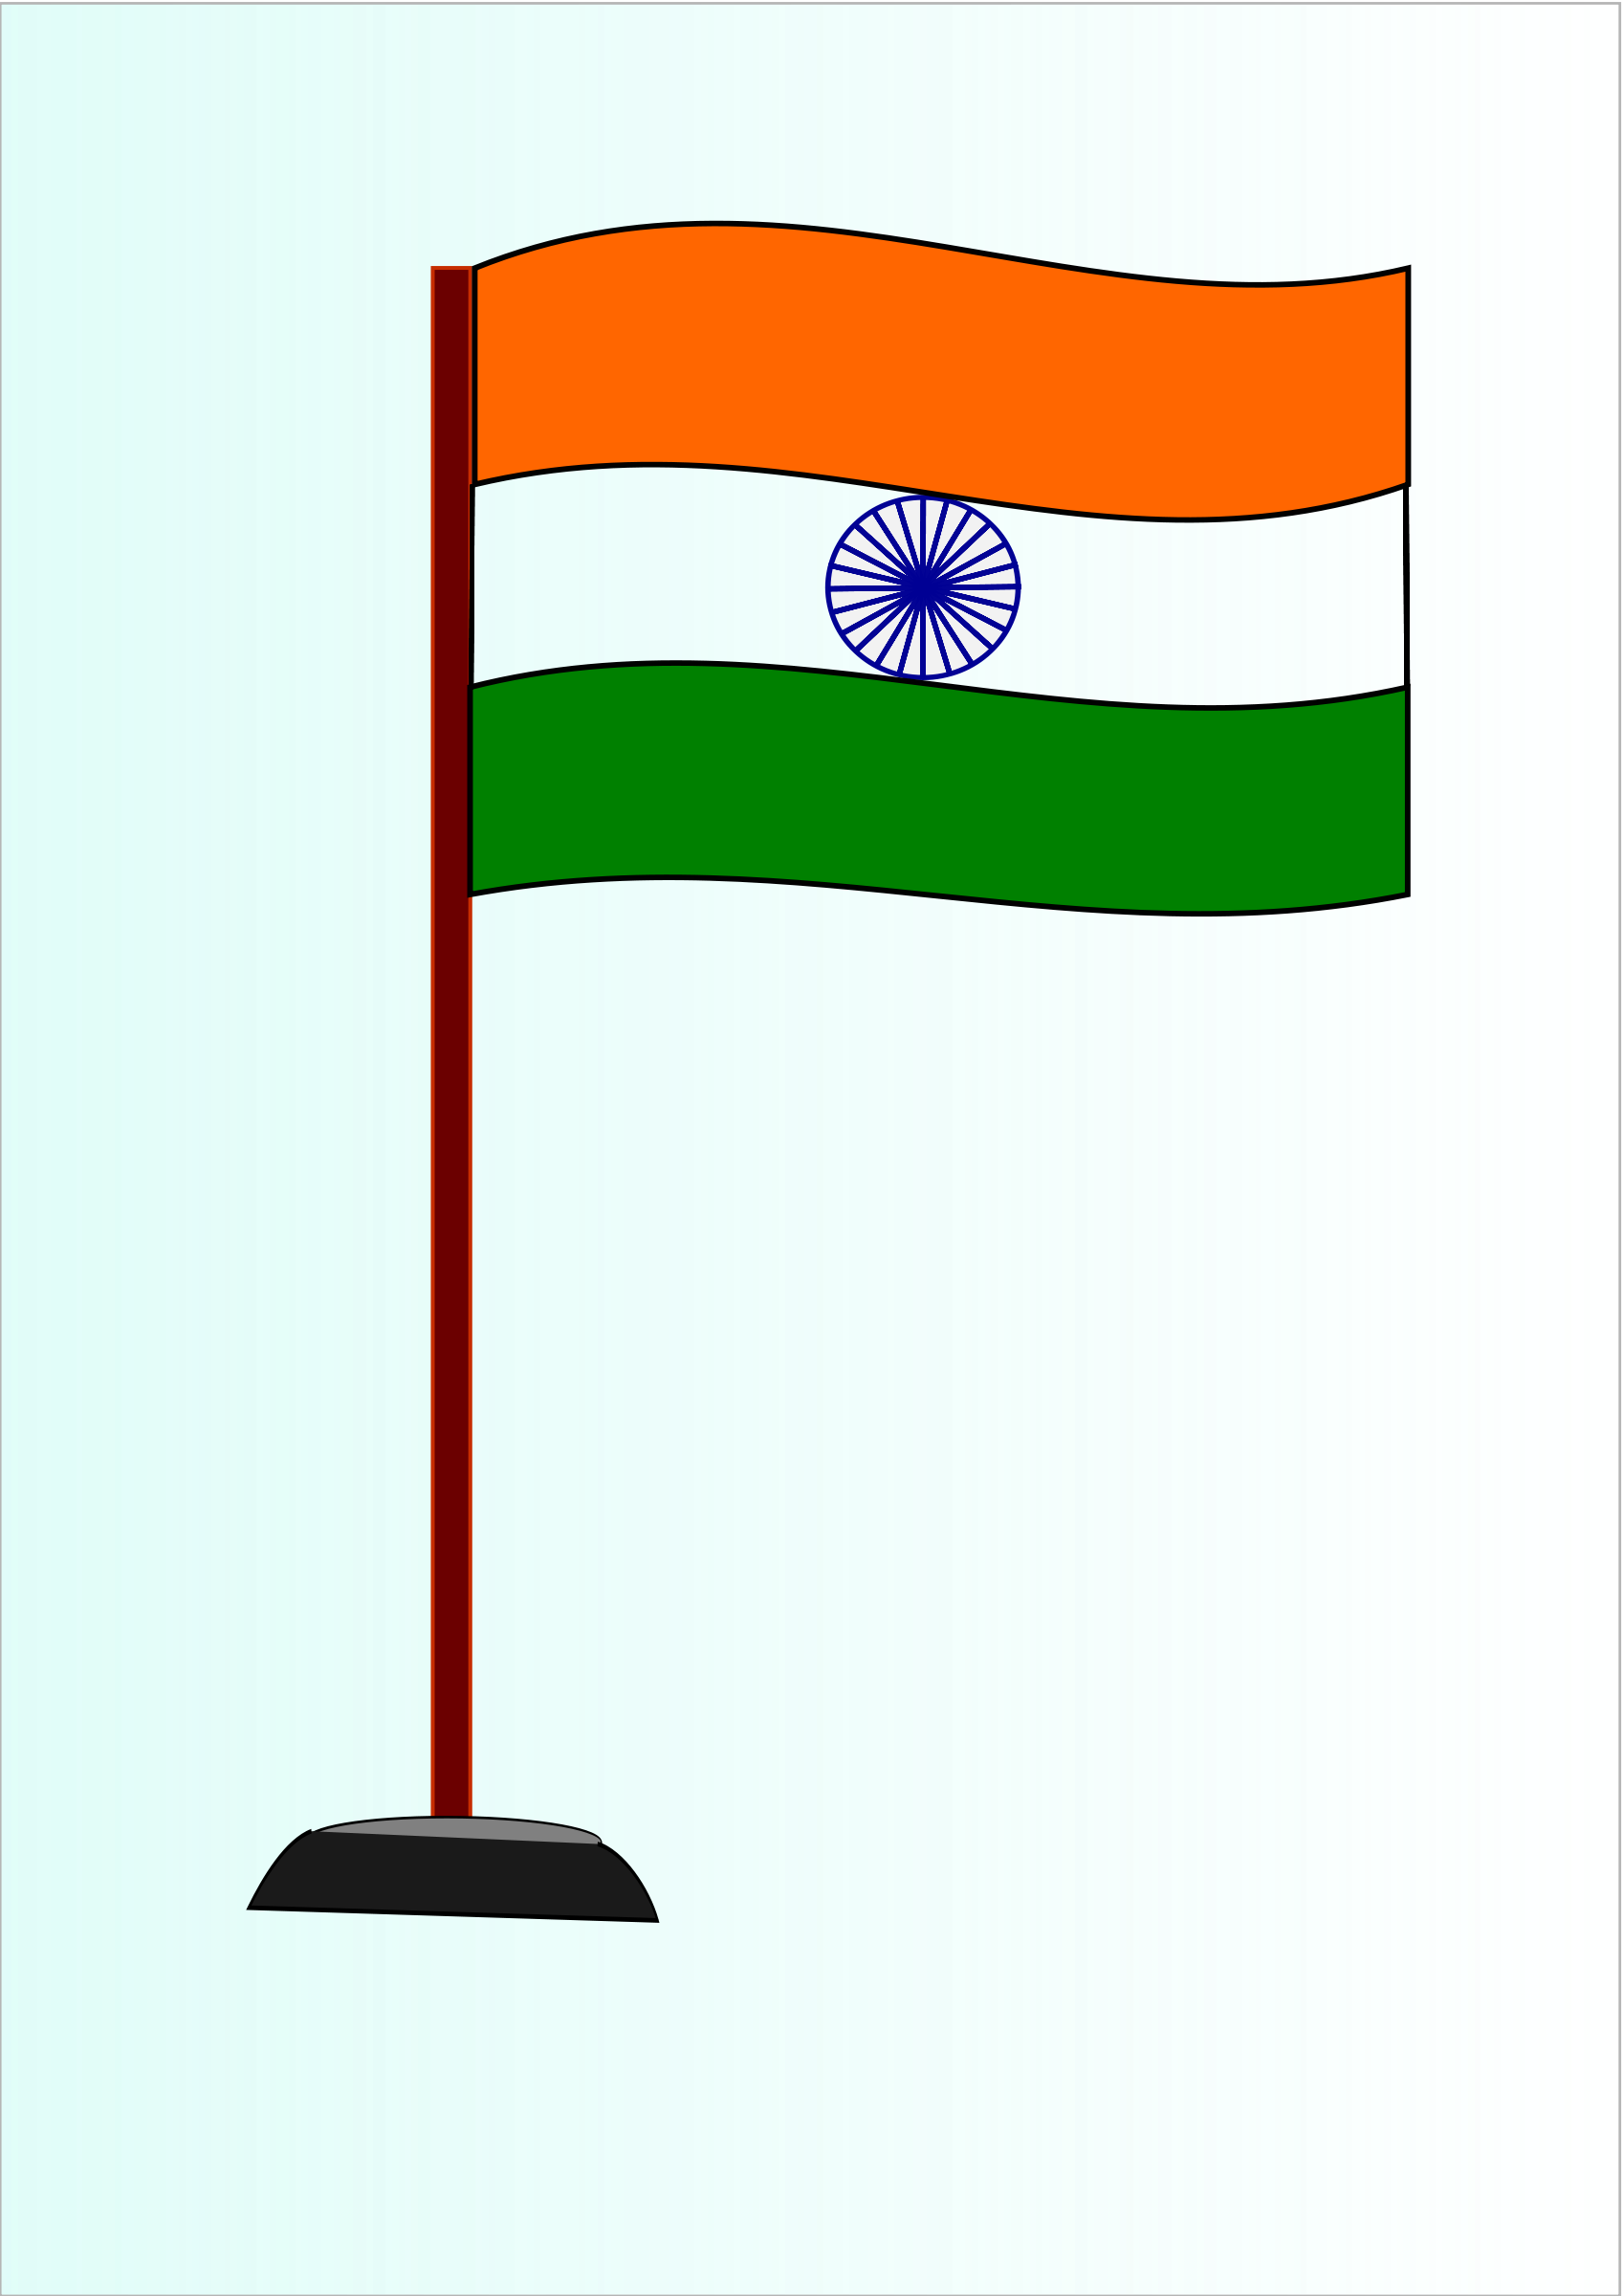 National Flags Clip Art N2 free image.